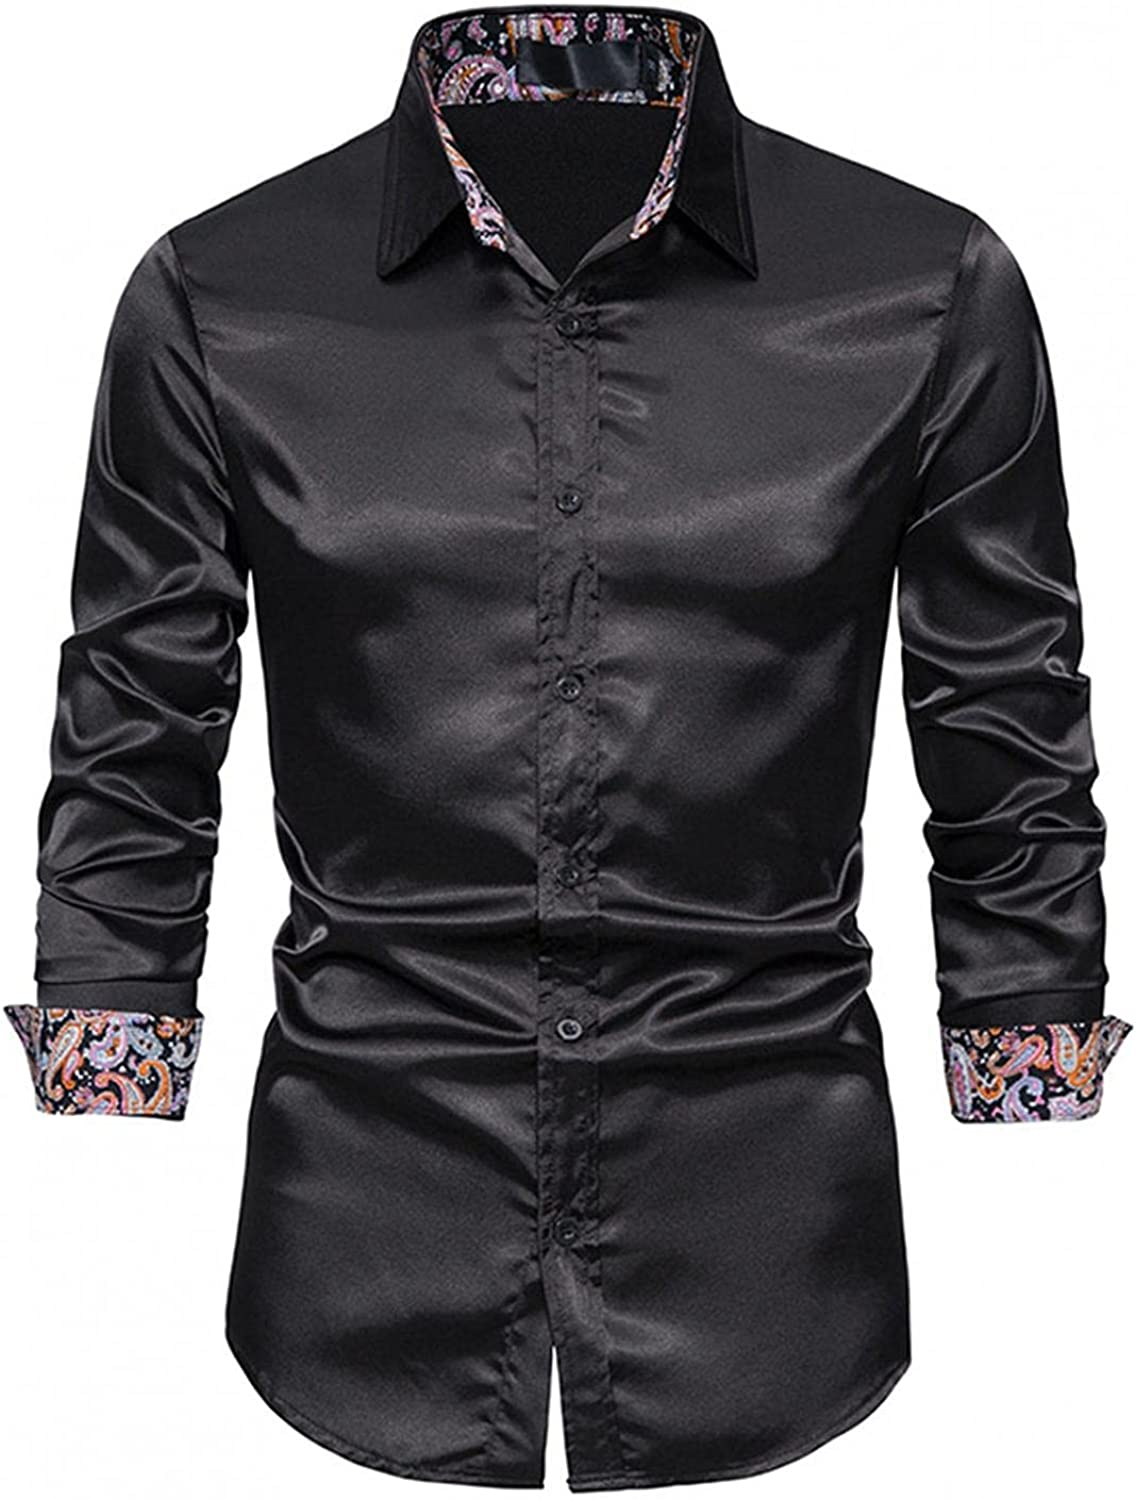 FUNEY Men's Inner Contrast Casual Formal Dress Shirts Long Sleeve Patchwork Plaid Printed Collar Slim Fit Button Down Shirt